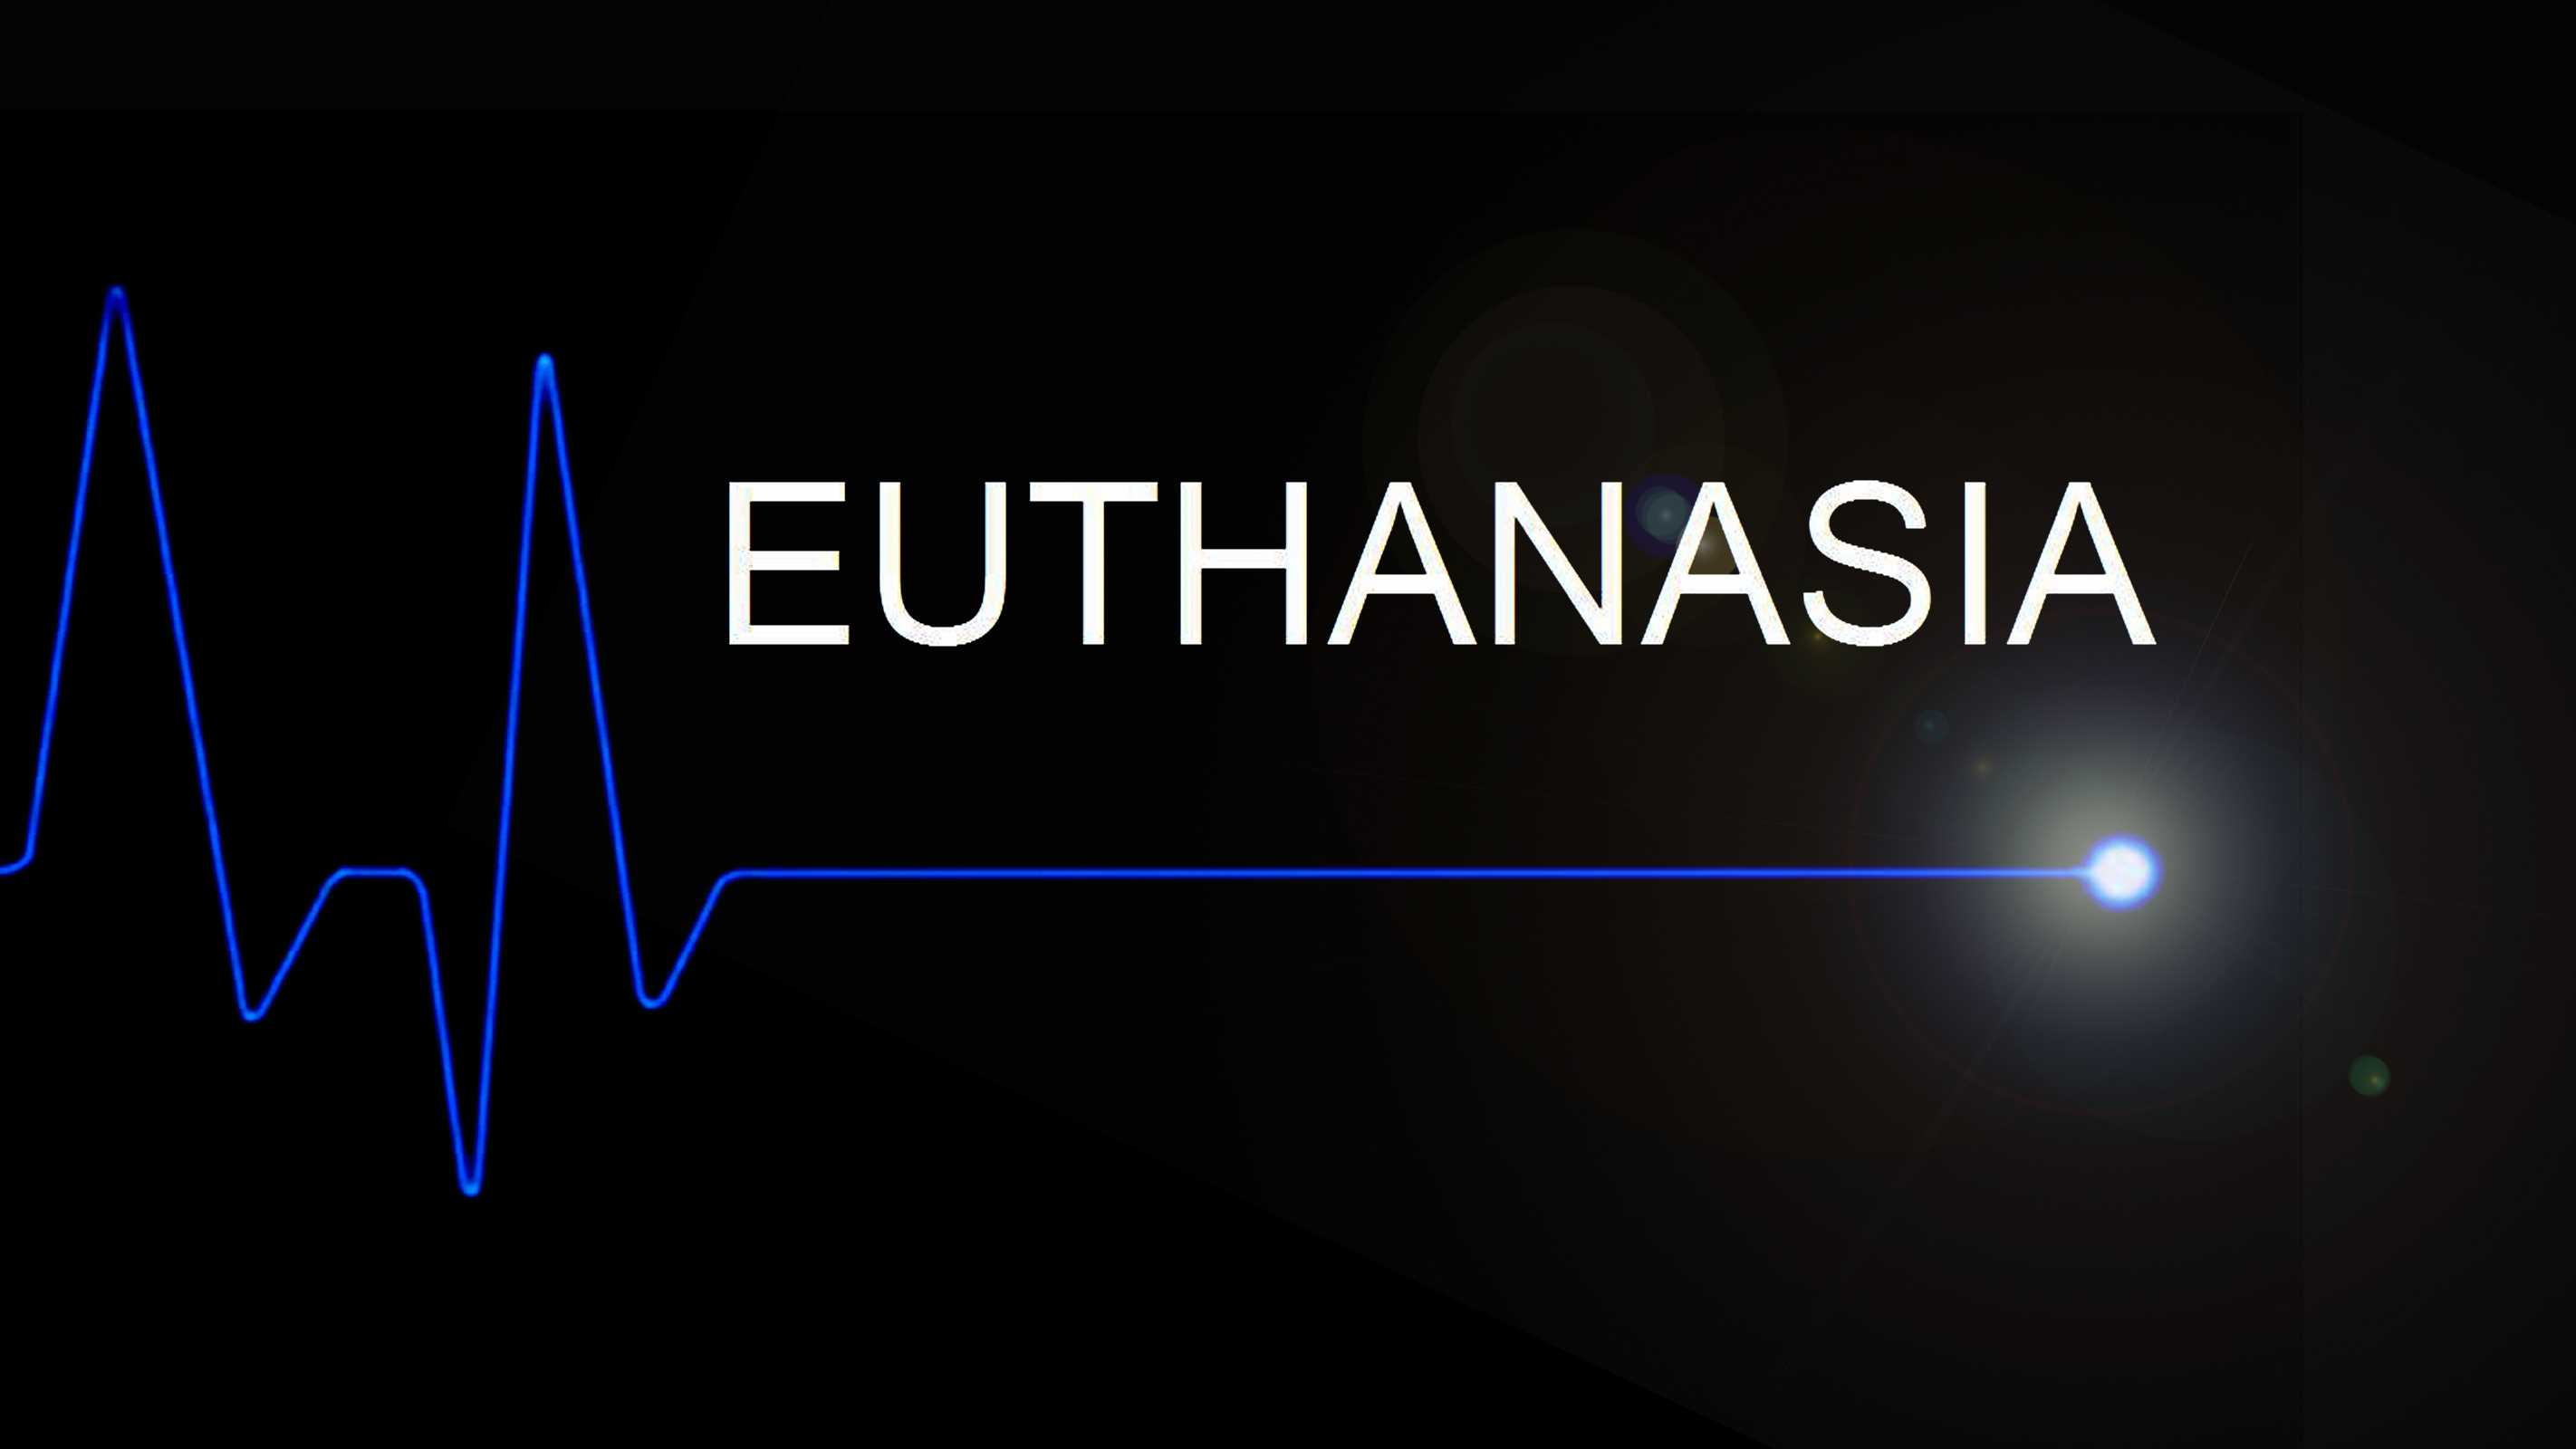 mercy killing debate should euthanasia be legalized netivist